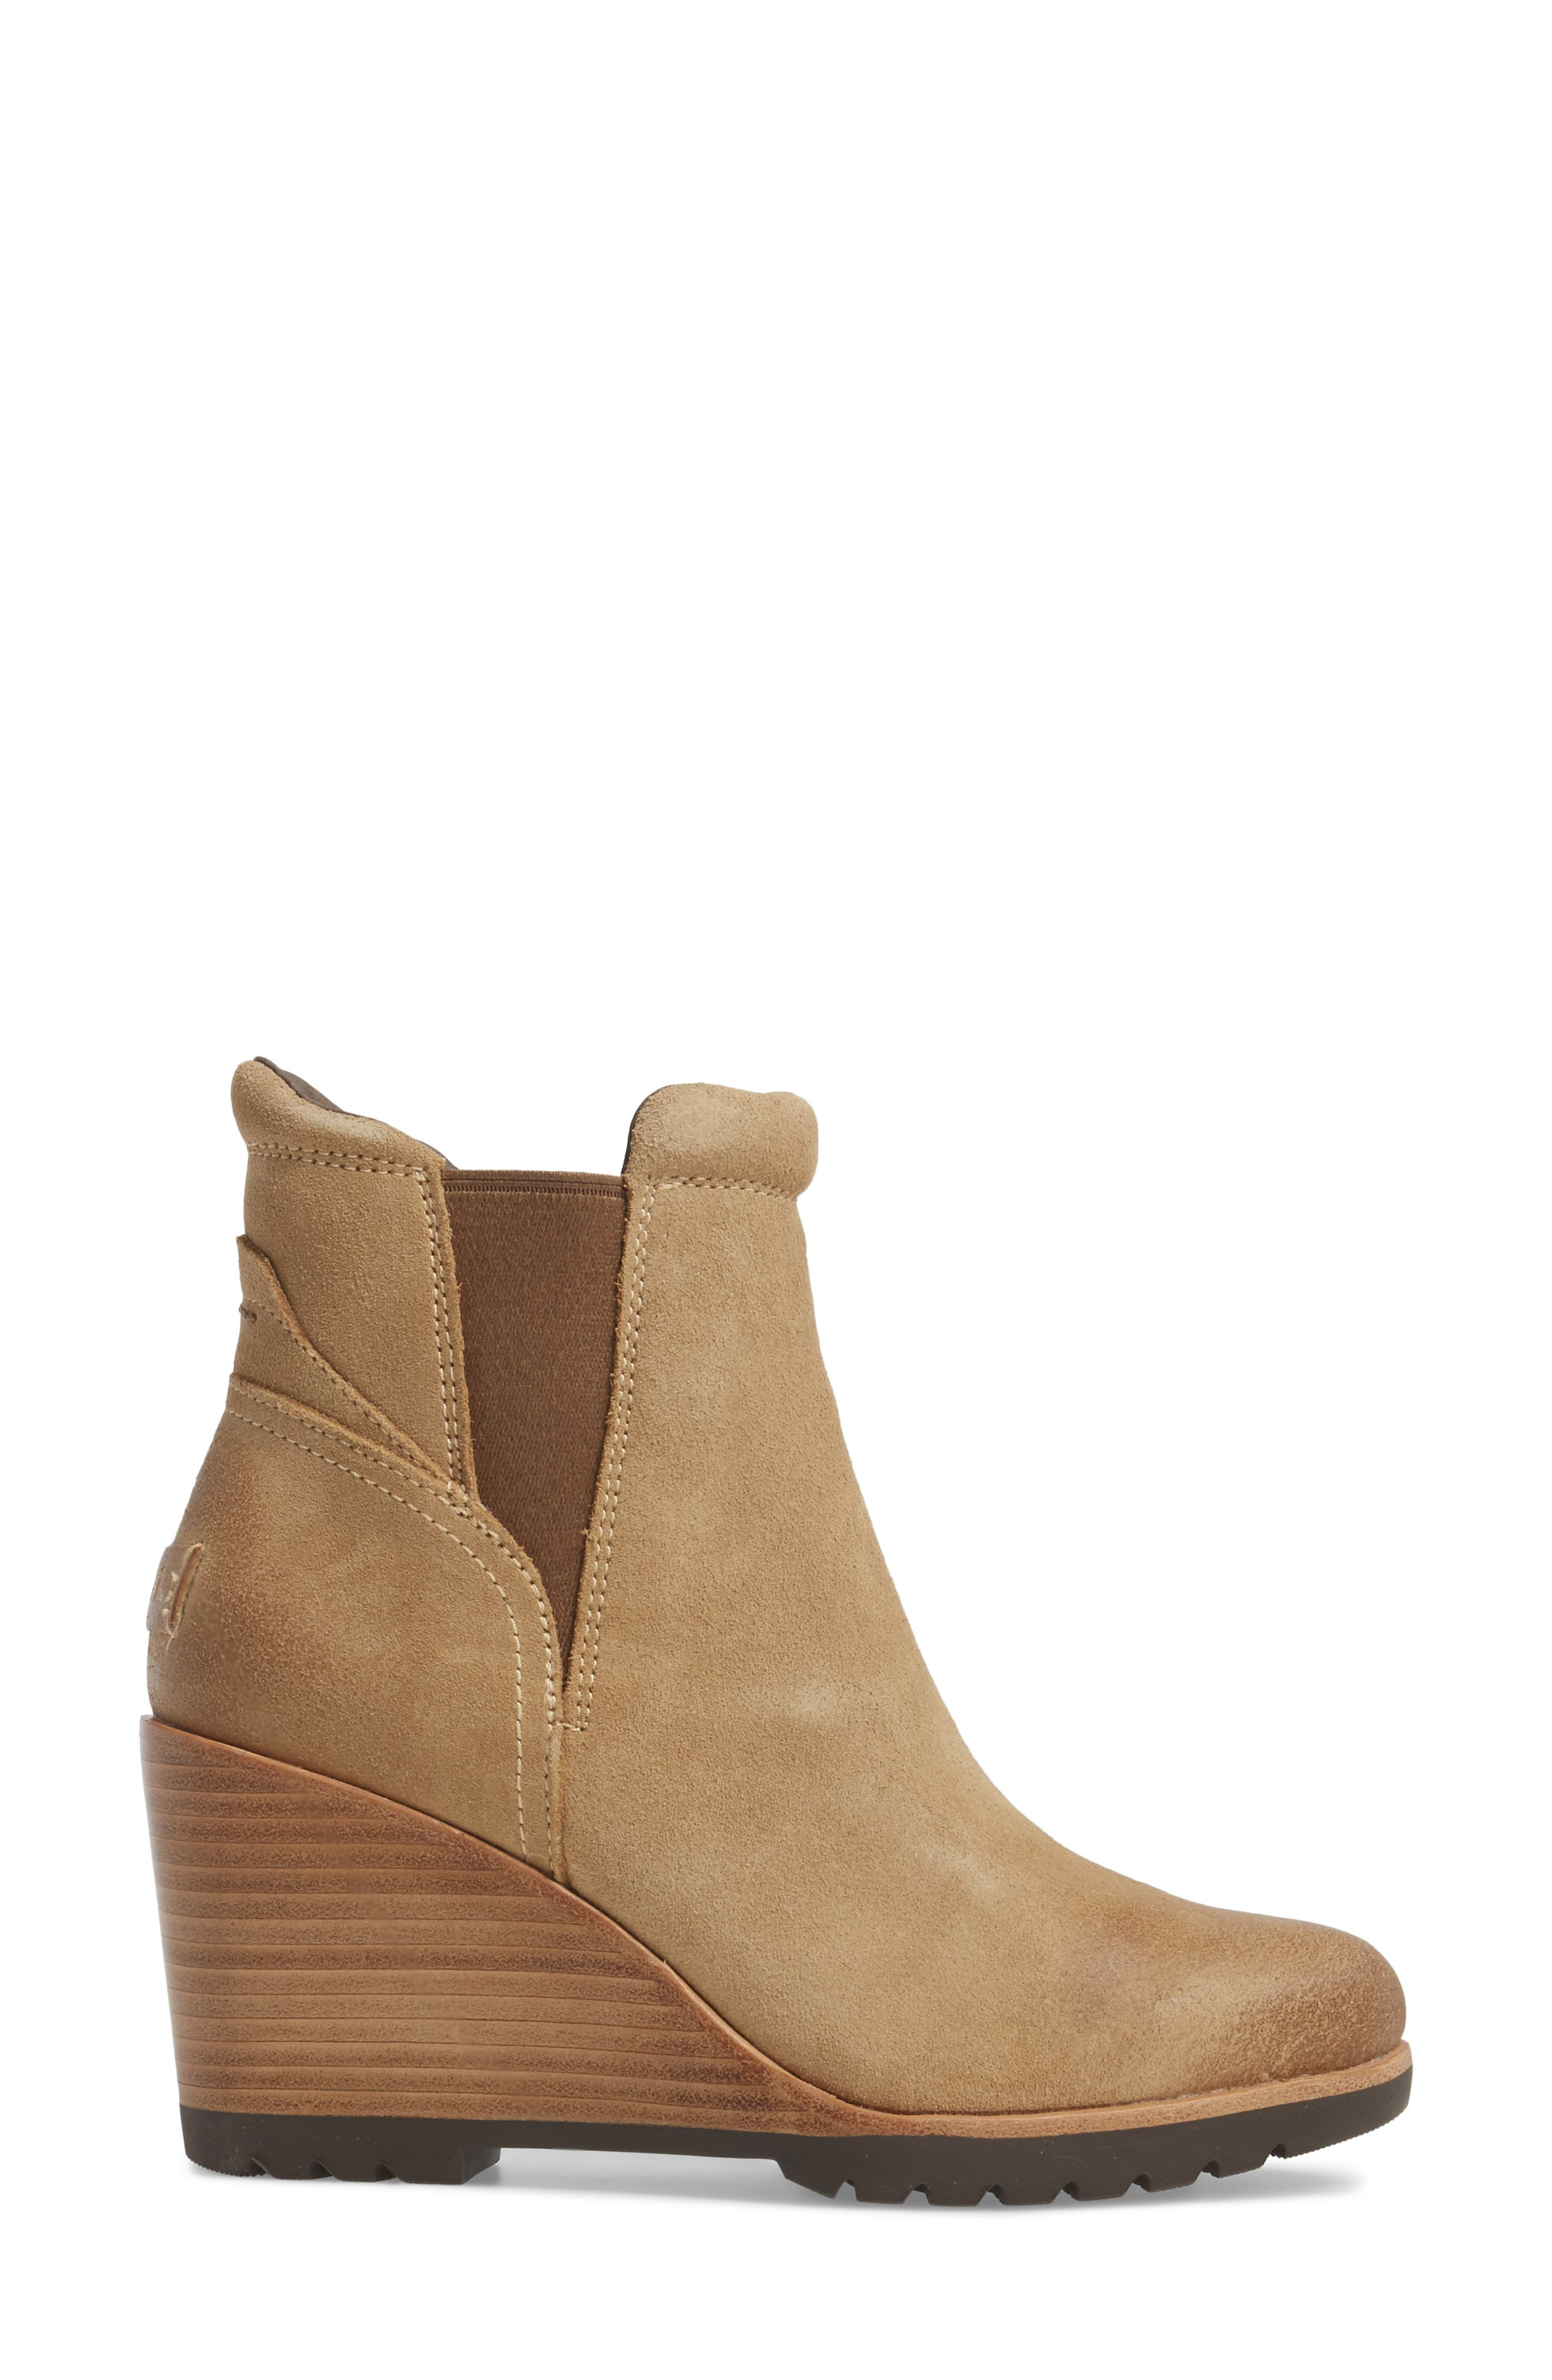 After Hours Chelsea Boot,                             Alternate thumbnail 3, color,                             Beach